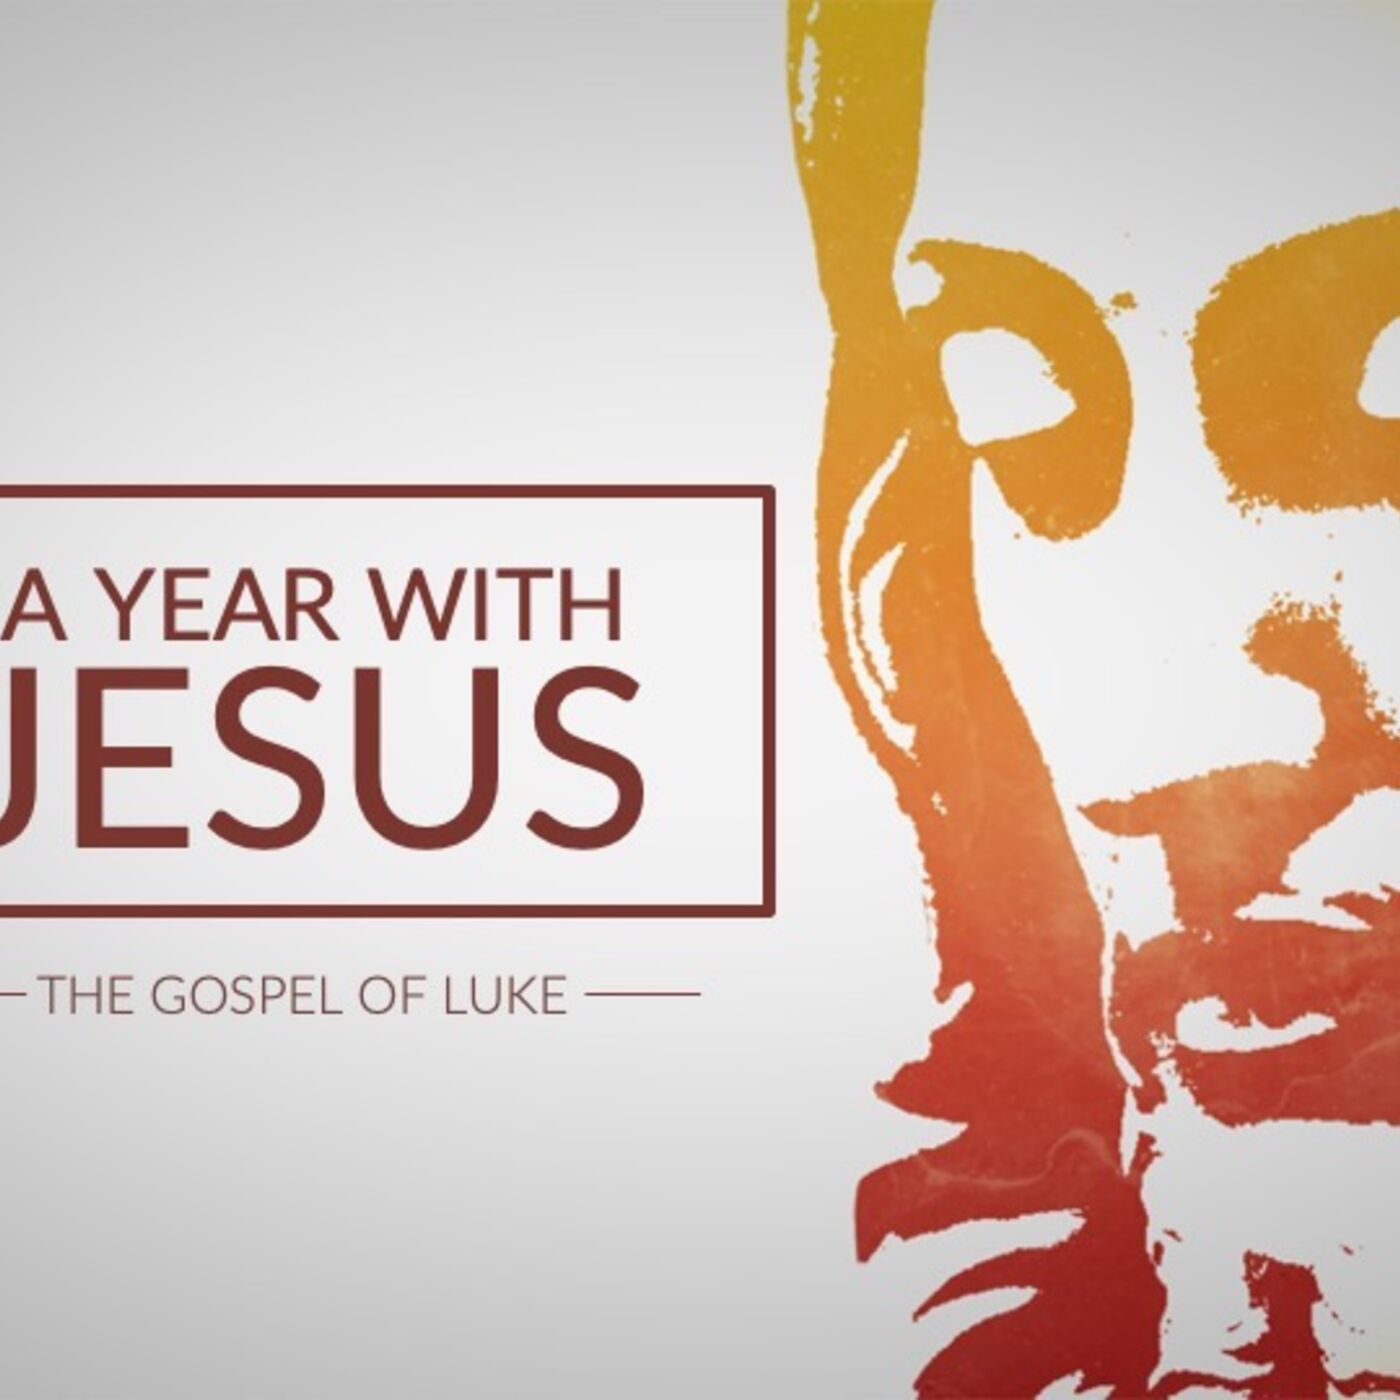 A Year With Jesus: Ready For The Kingdom Of God? (Luke 13:18-35)